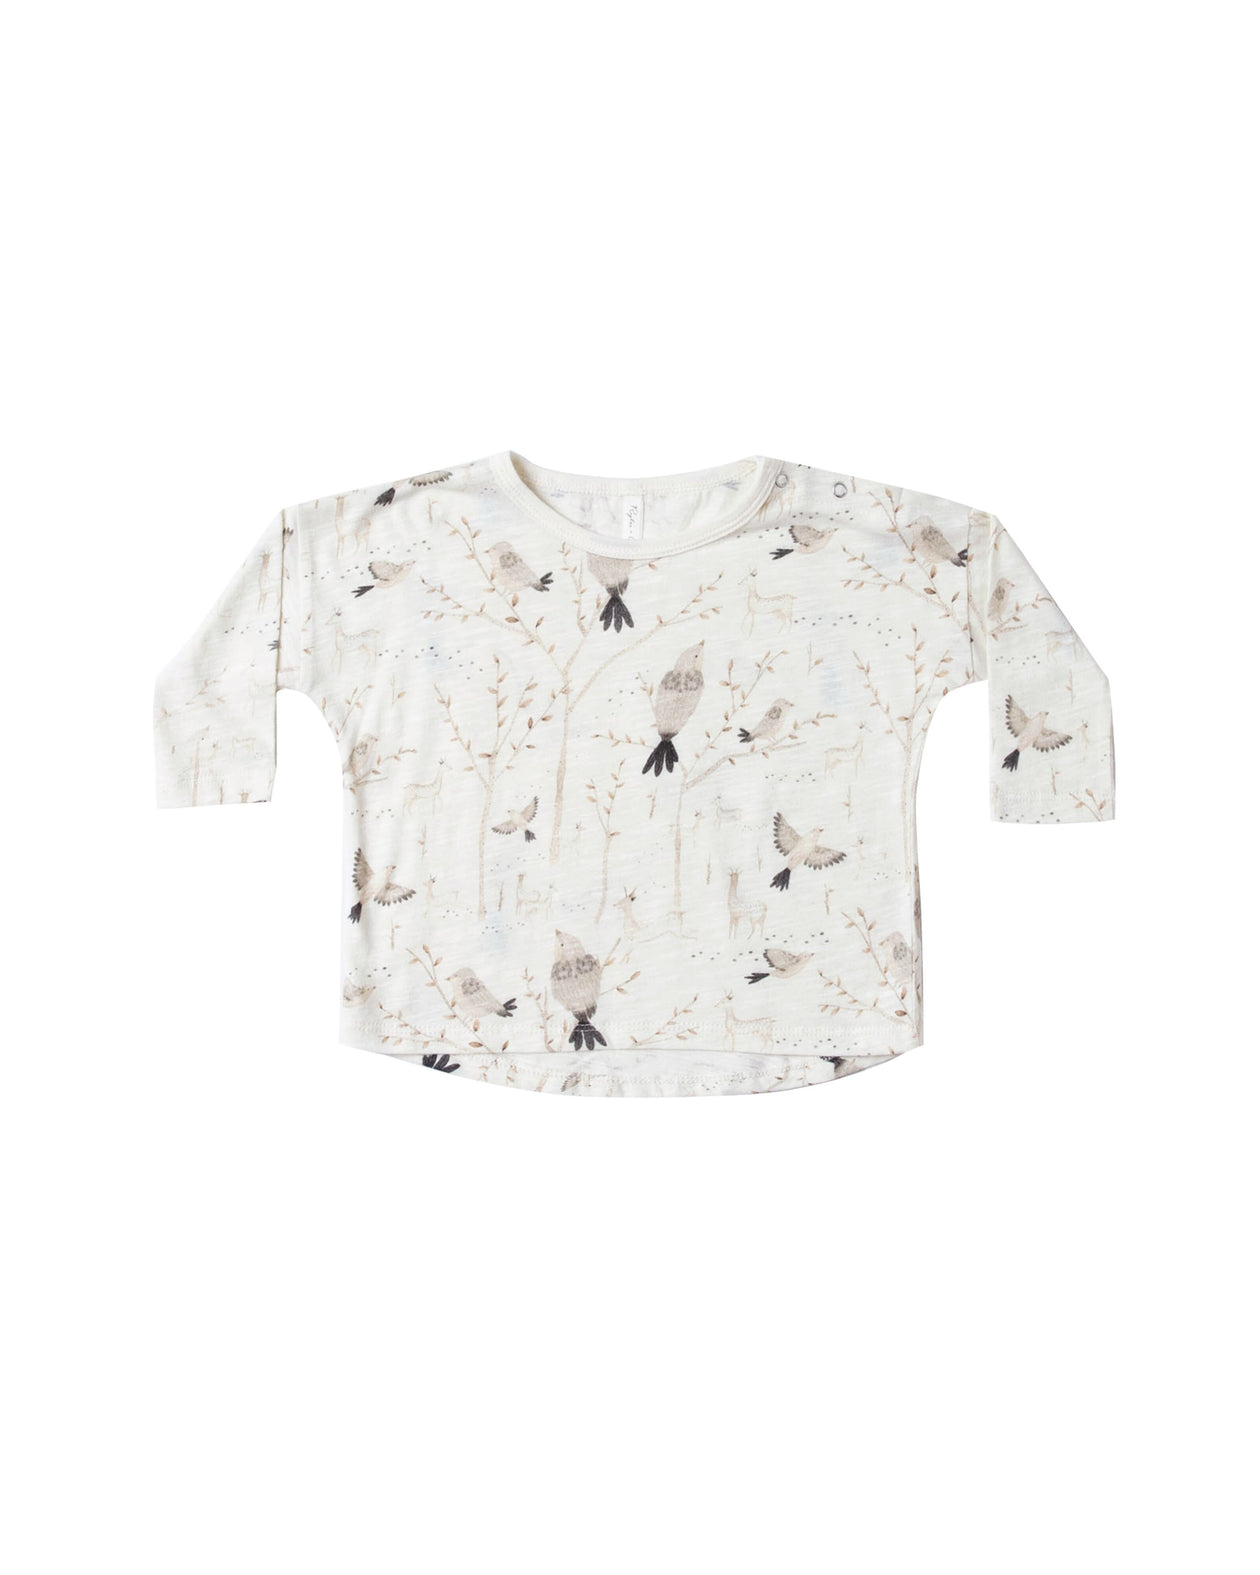 Winter Birds Long Sleeve Tee by Rylee & Cru